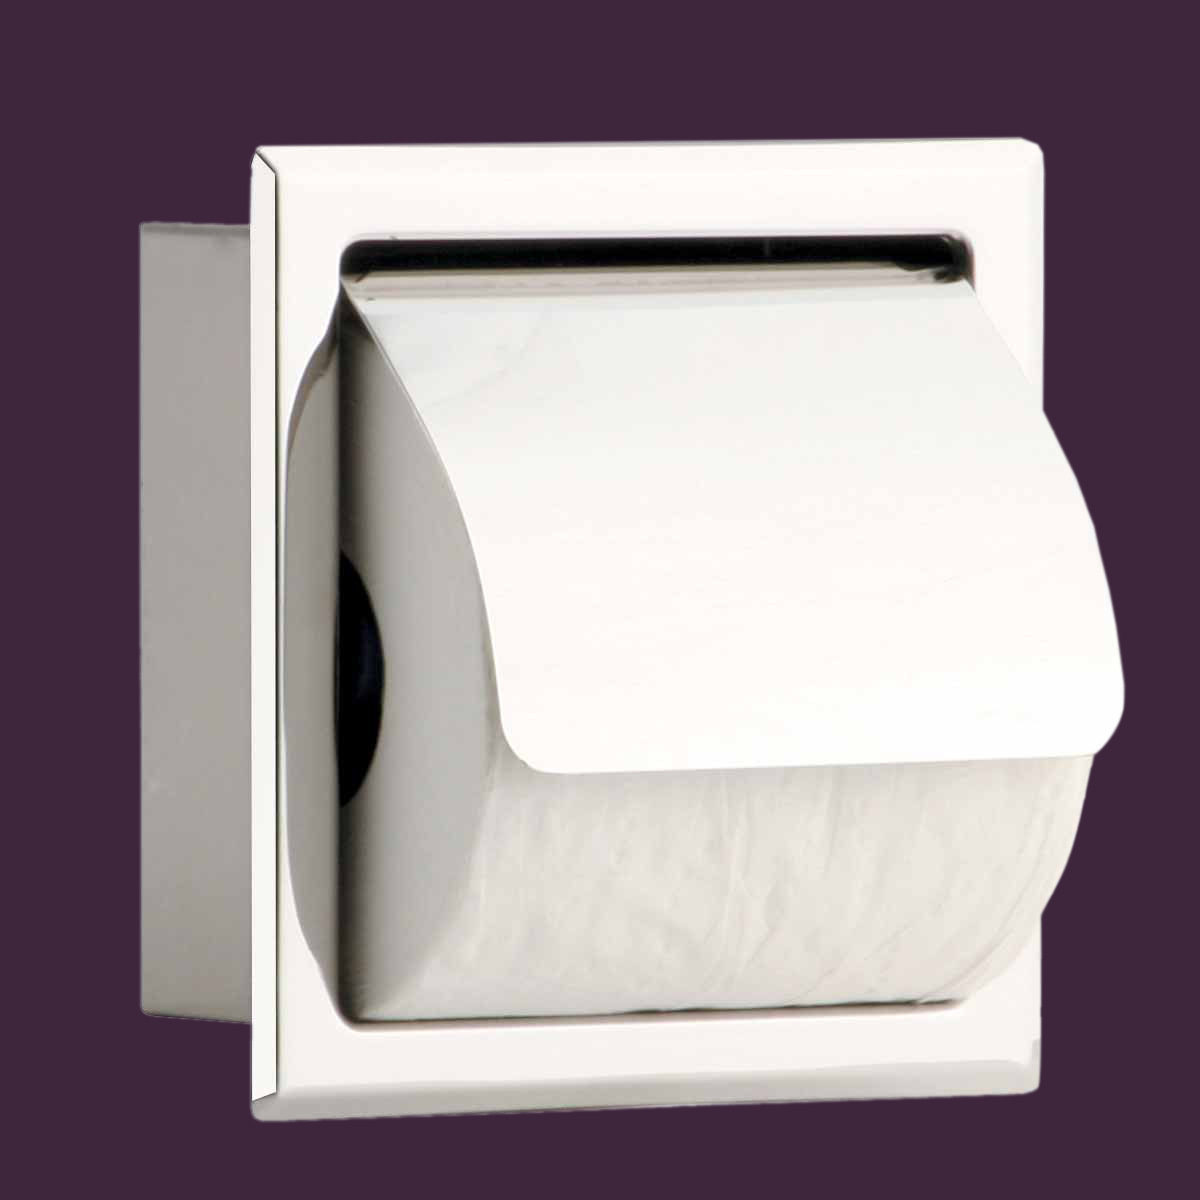 Recessed Toilet Tissue Holder With Lid Stainless Steel